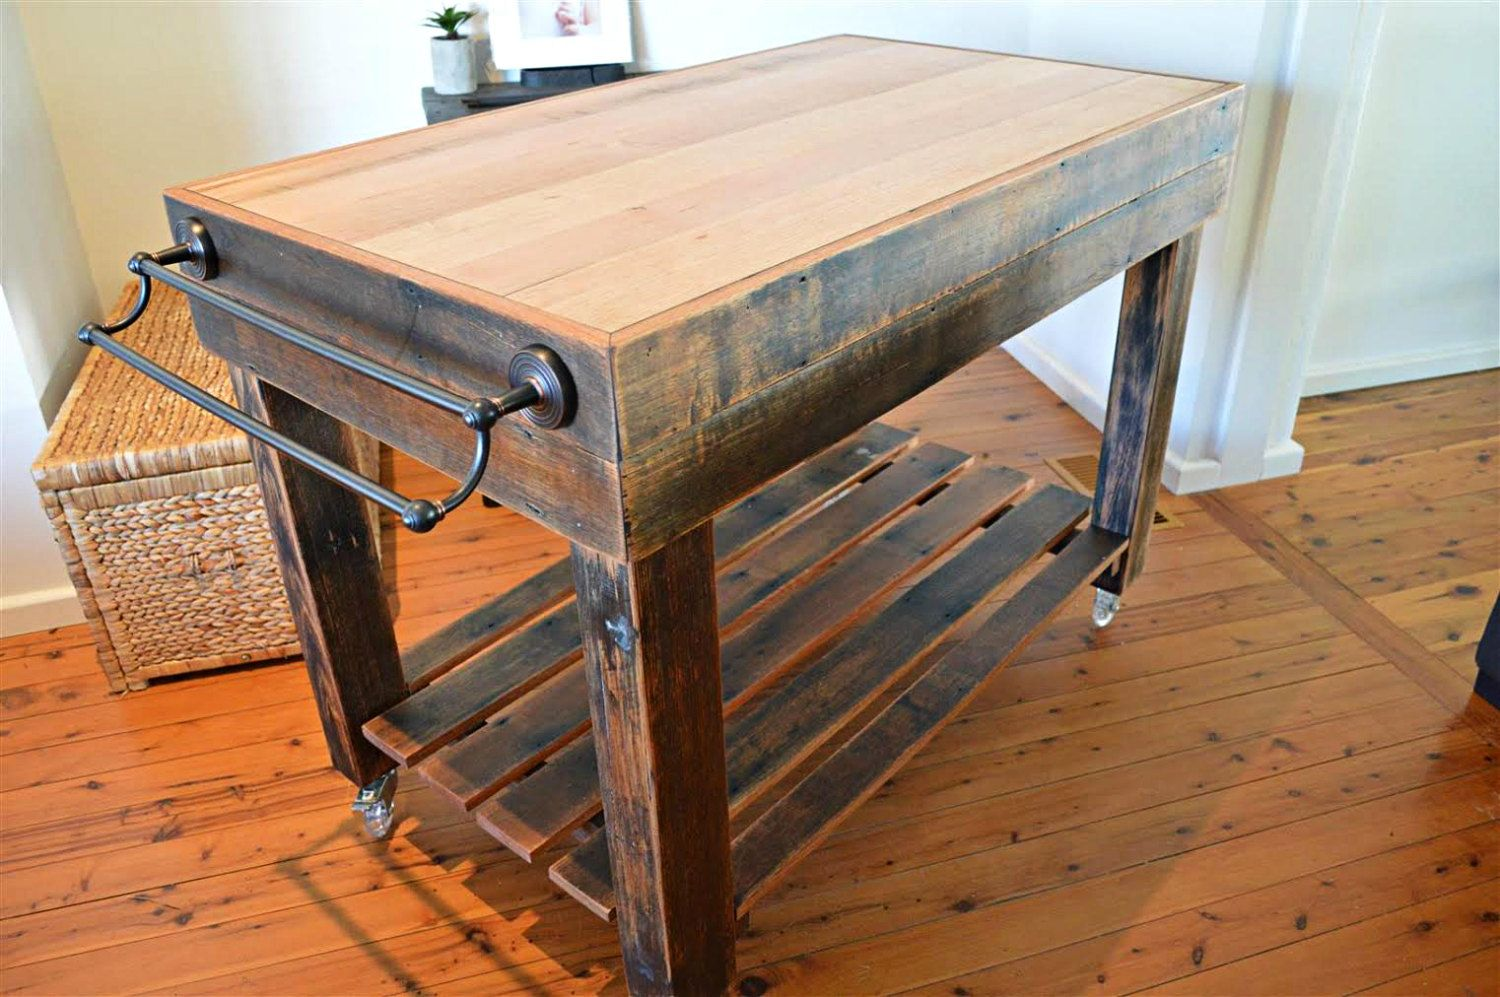 Butchers Block Style Island Bench Rustic On Castor Wheels Inbuilt Knife Block And Towel Rail Made To Order In Australia Kitchen Rustic Kitchen Island Diy Kitchen Island Kitchen Island Bench